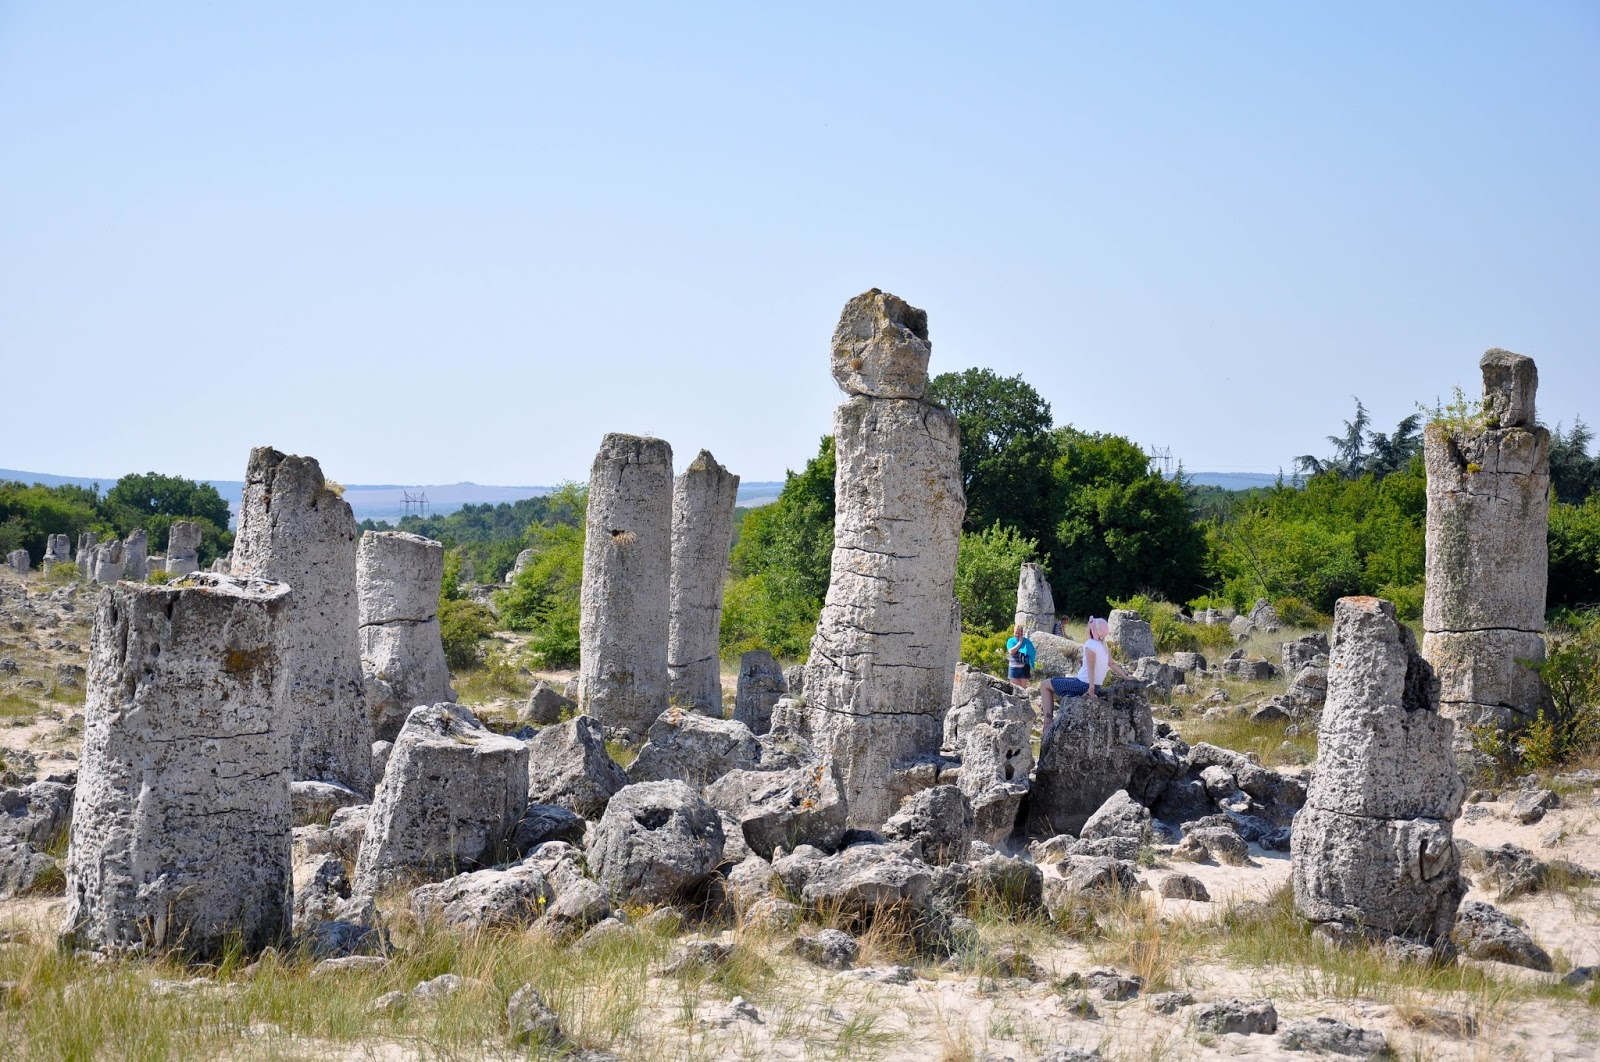 Mighty pillars with the Fertility stone in the middle, The Stone Forest, Varna, Bulgaria